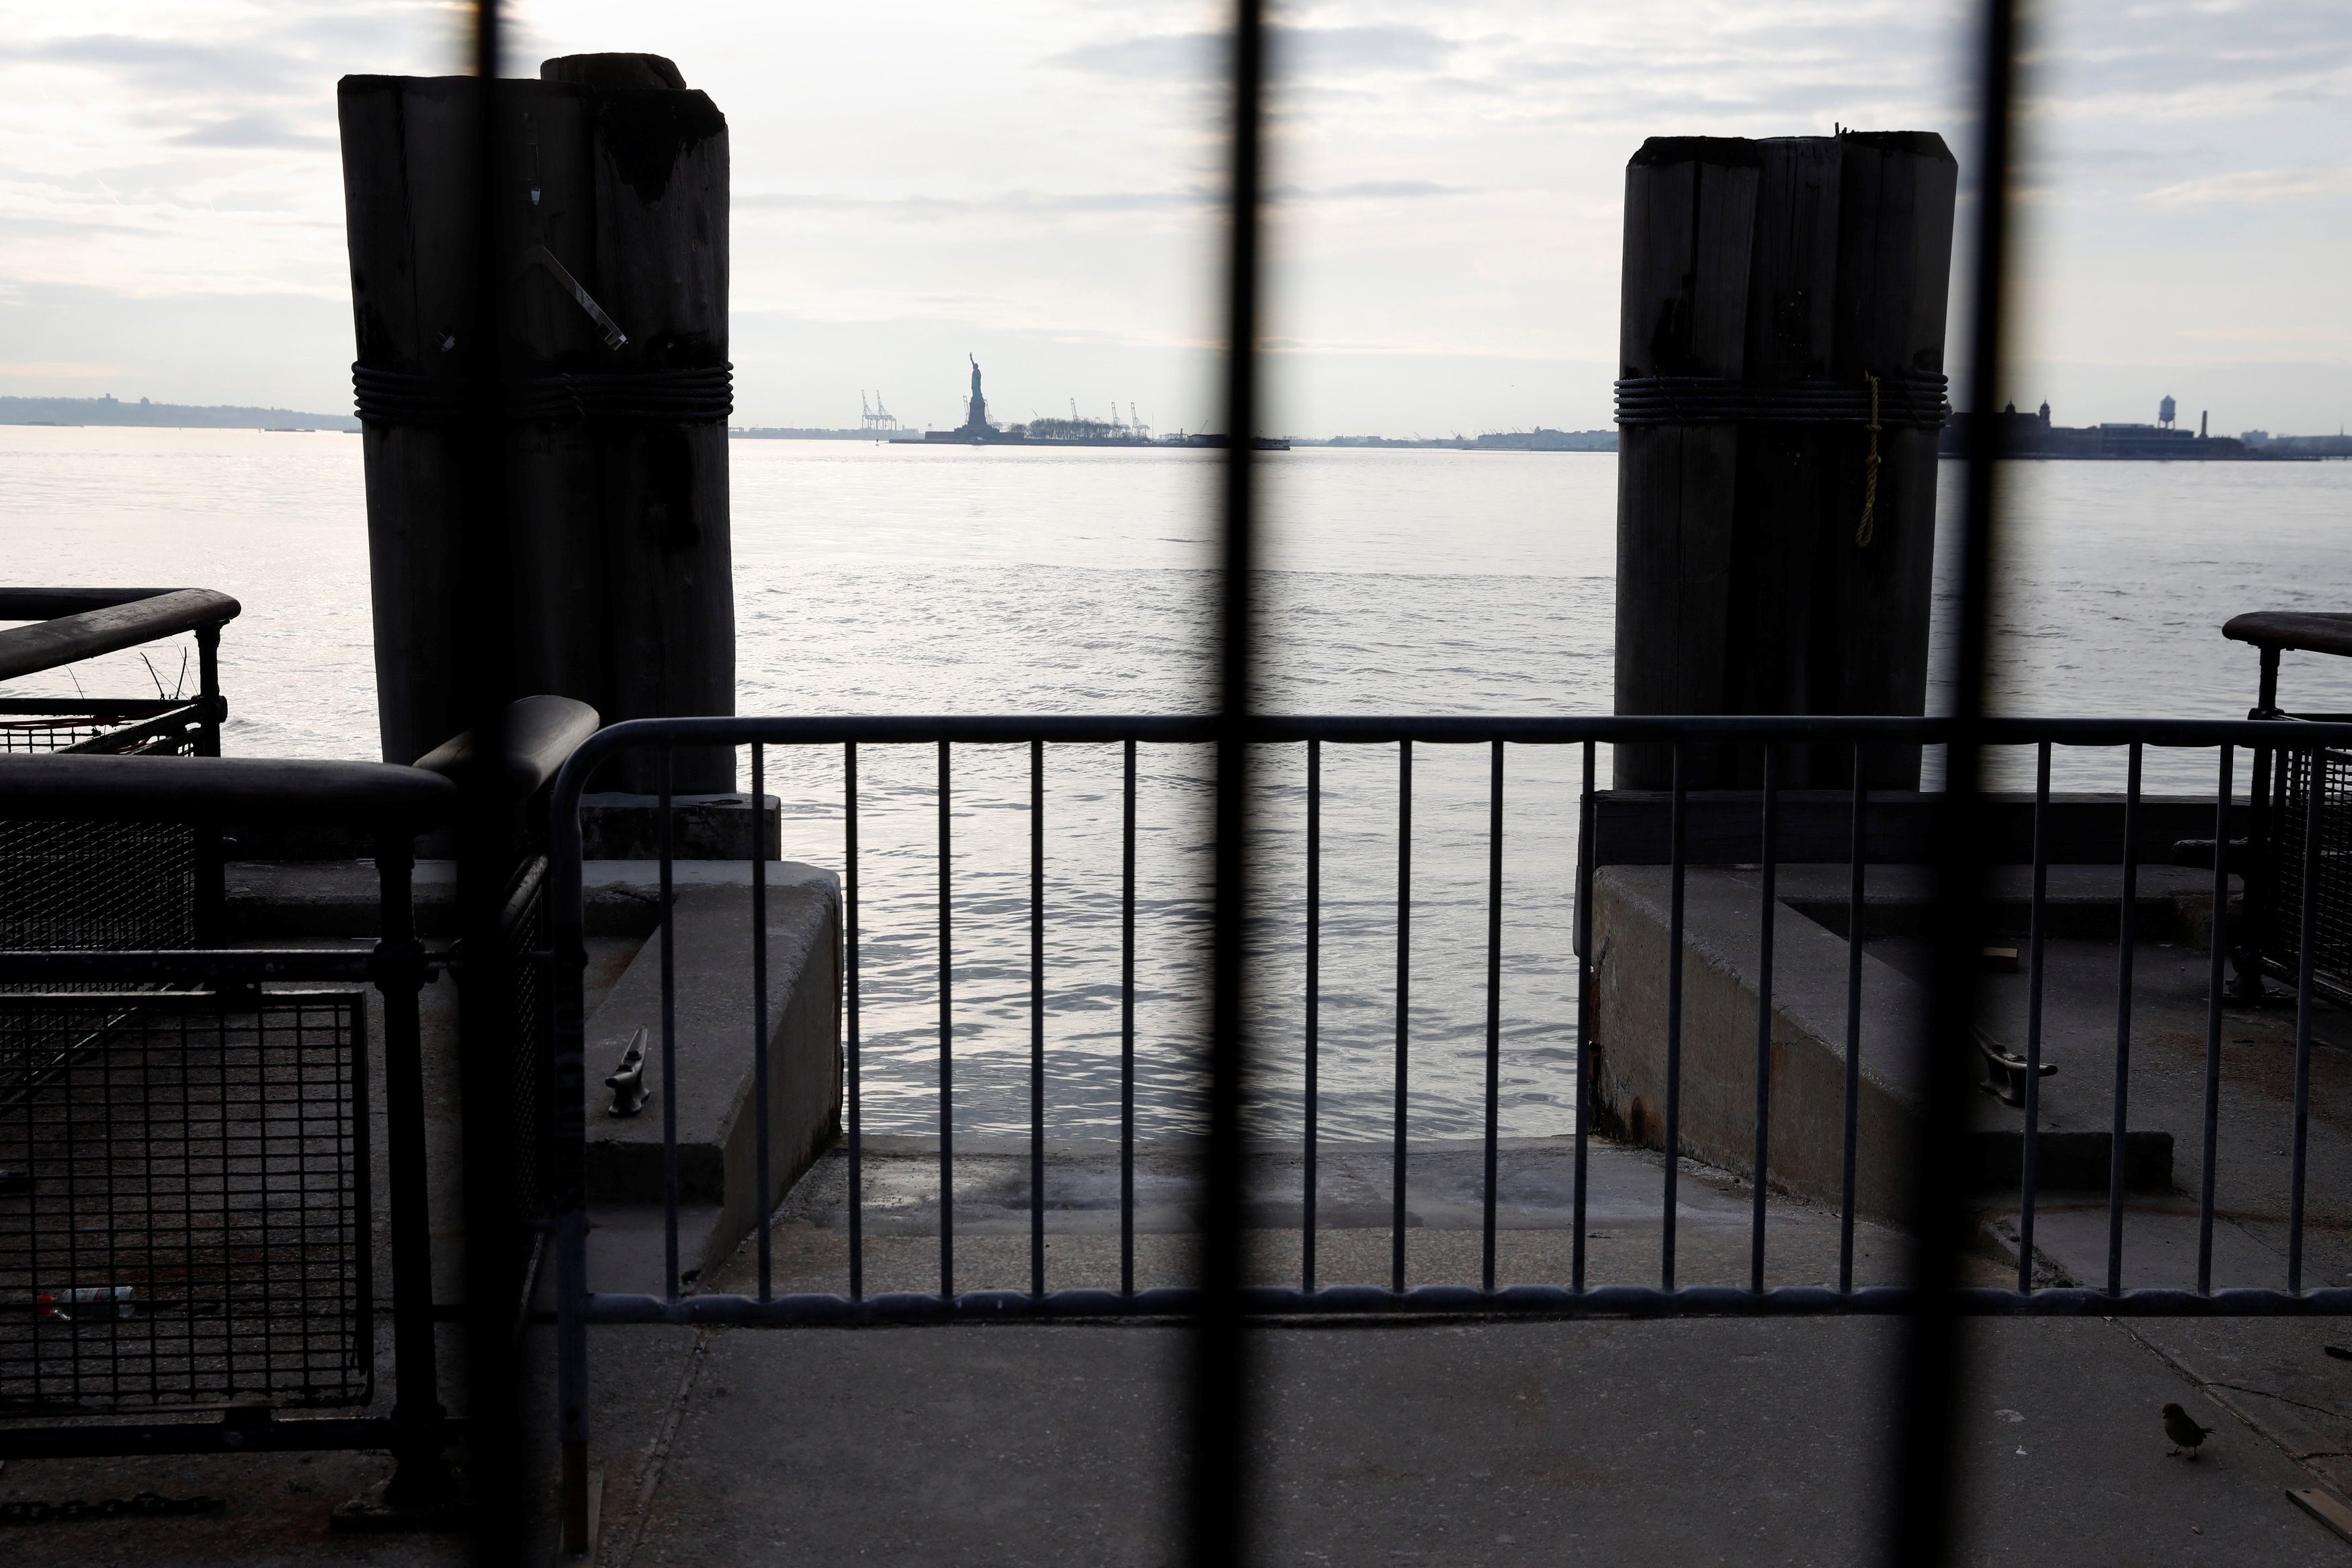 The Statue of Liberty is seen through fencing from a ferry dock following a U.S. government shutdown in Manhattan, New York, U.S., January 21, 2018.